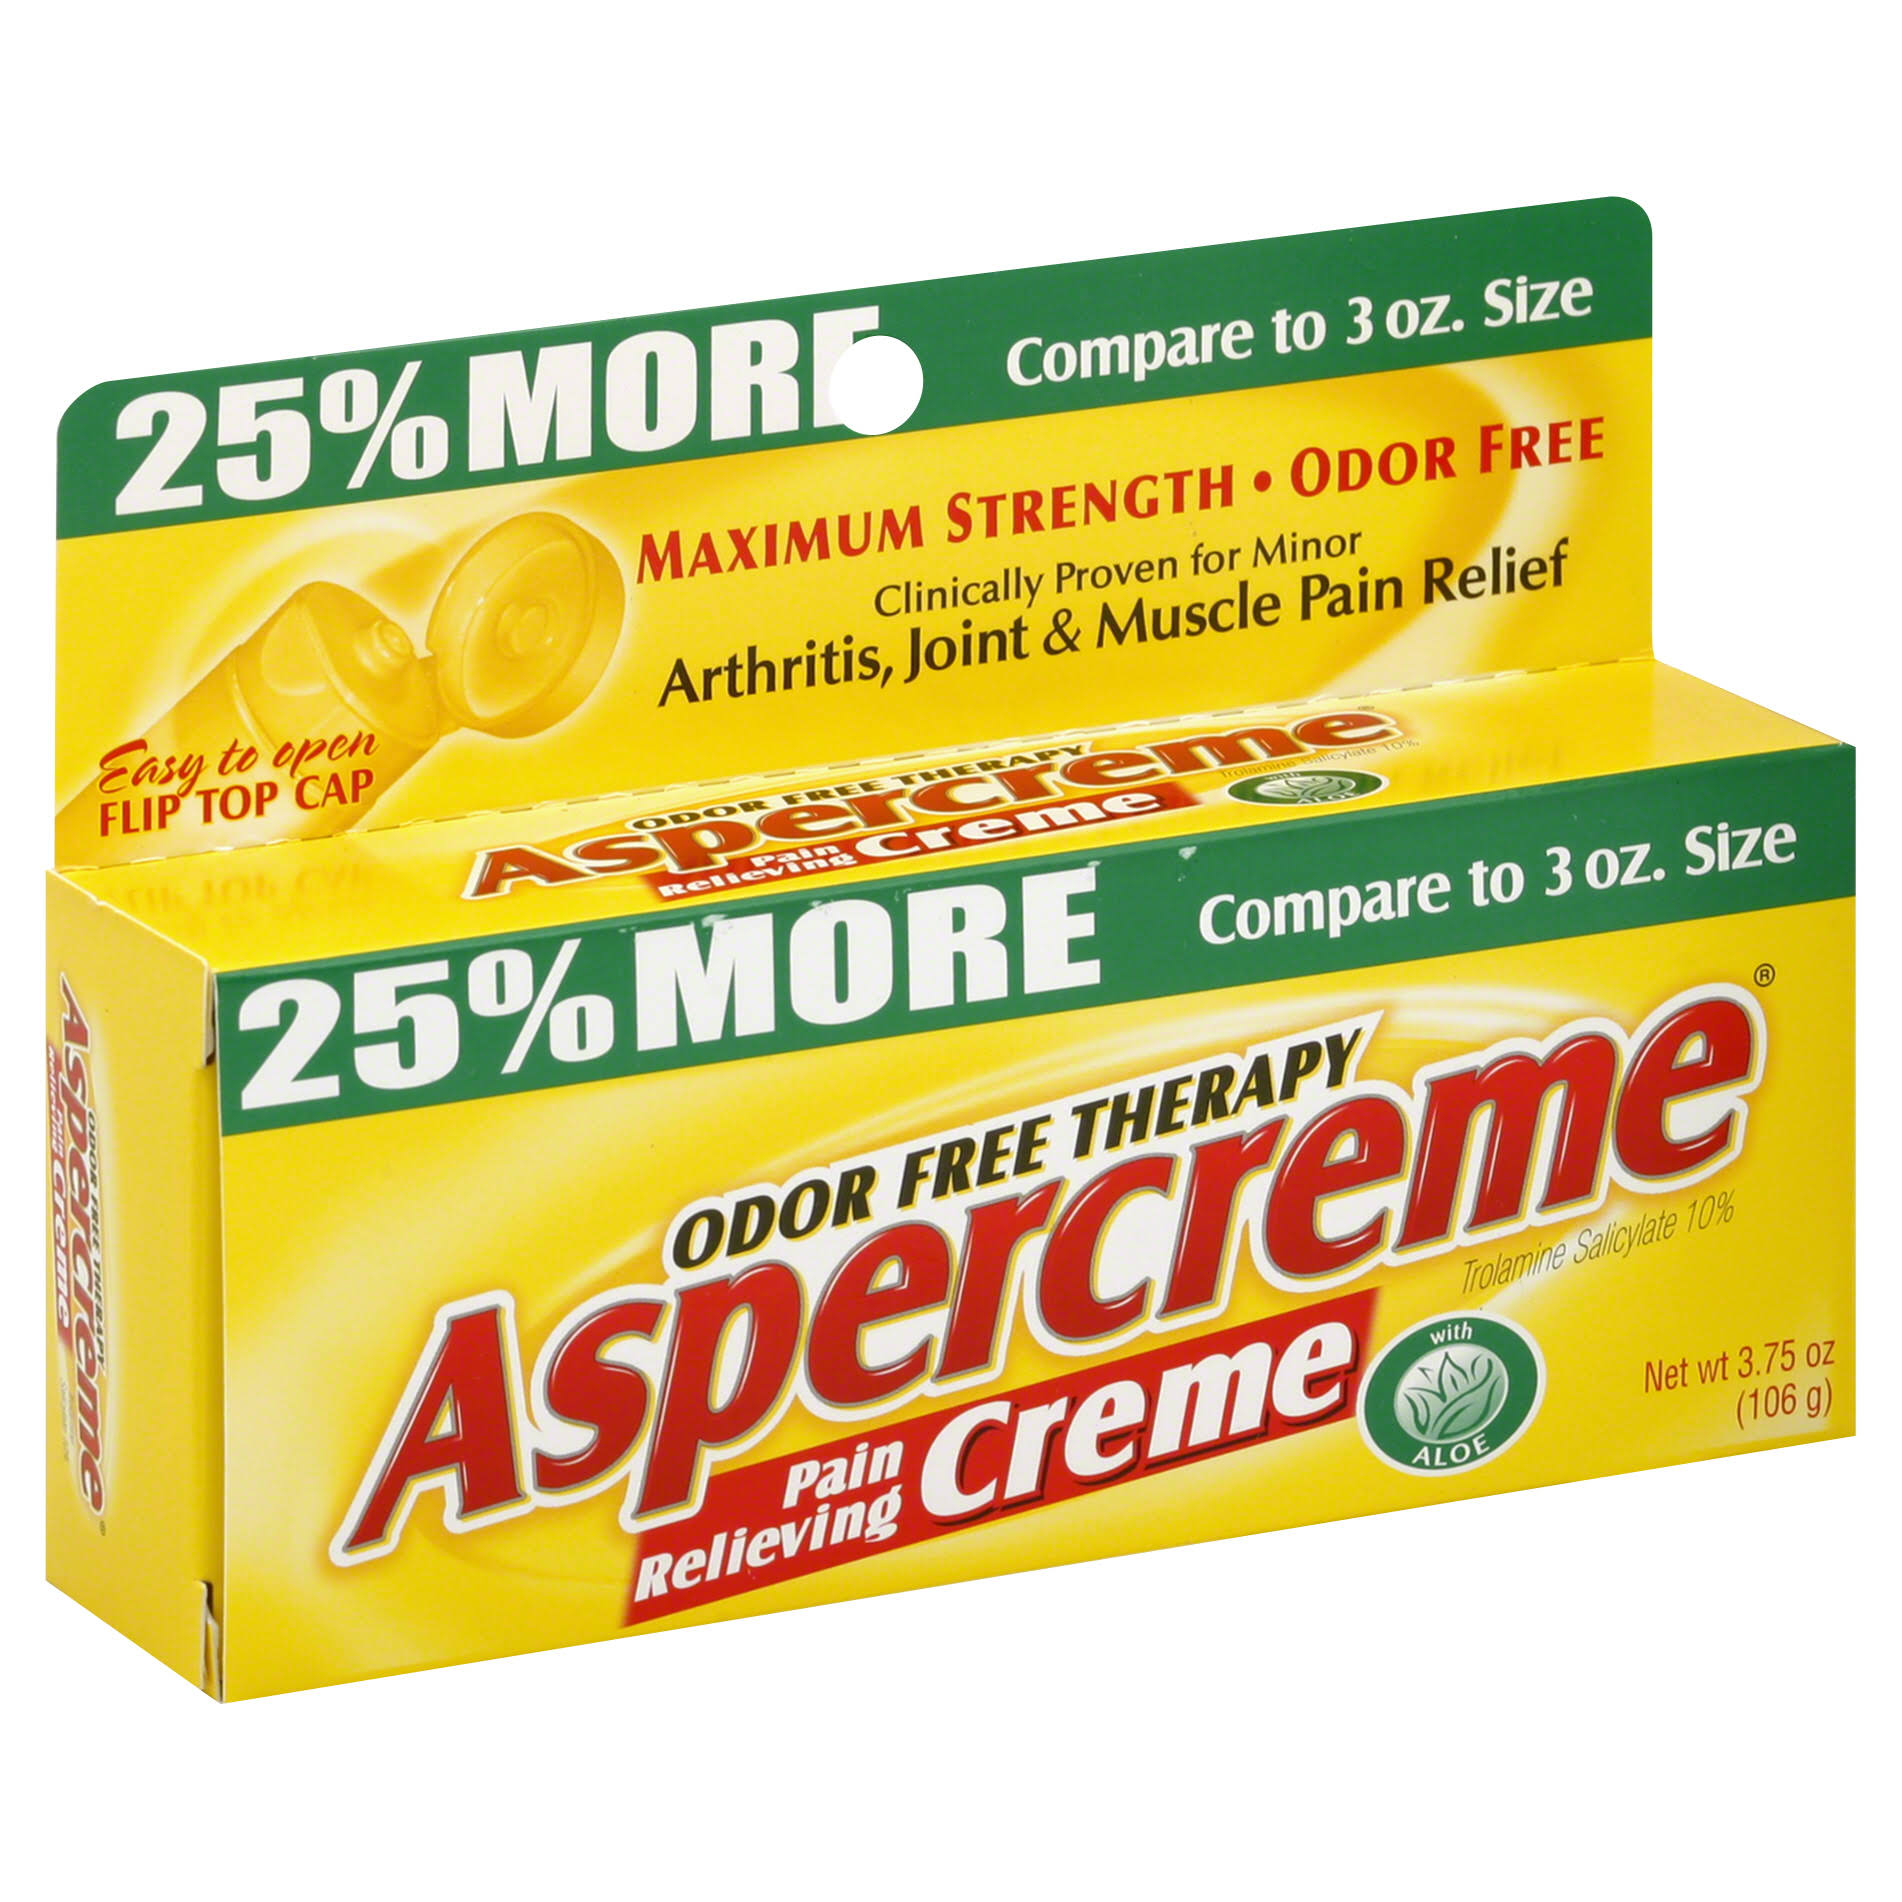 Aspercreme Odor Therapy Pain Relieving Cream - 3oz